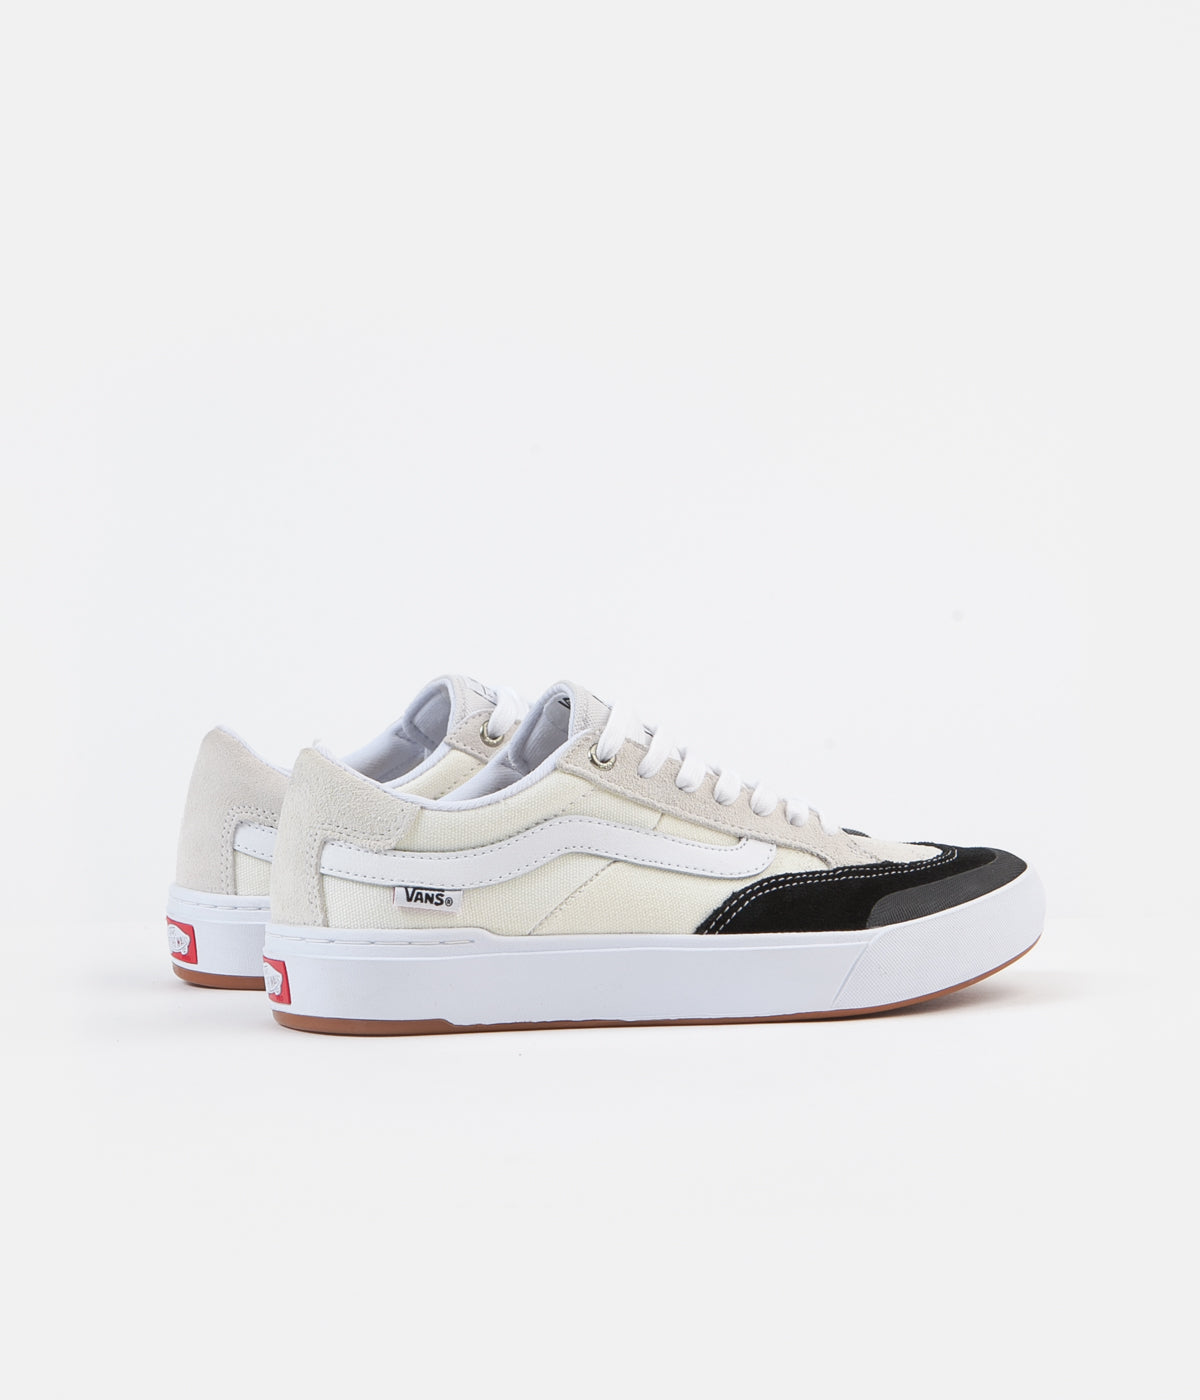 Vans Berle Pro Shoes - Marshmallow / Black